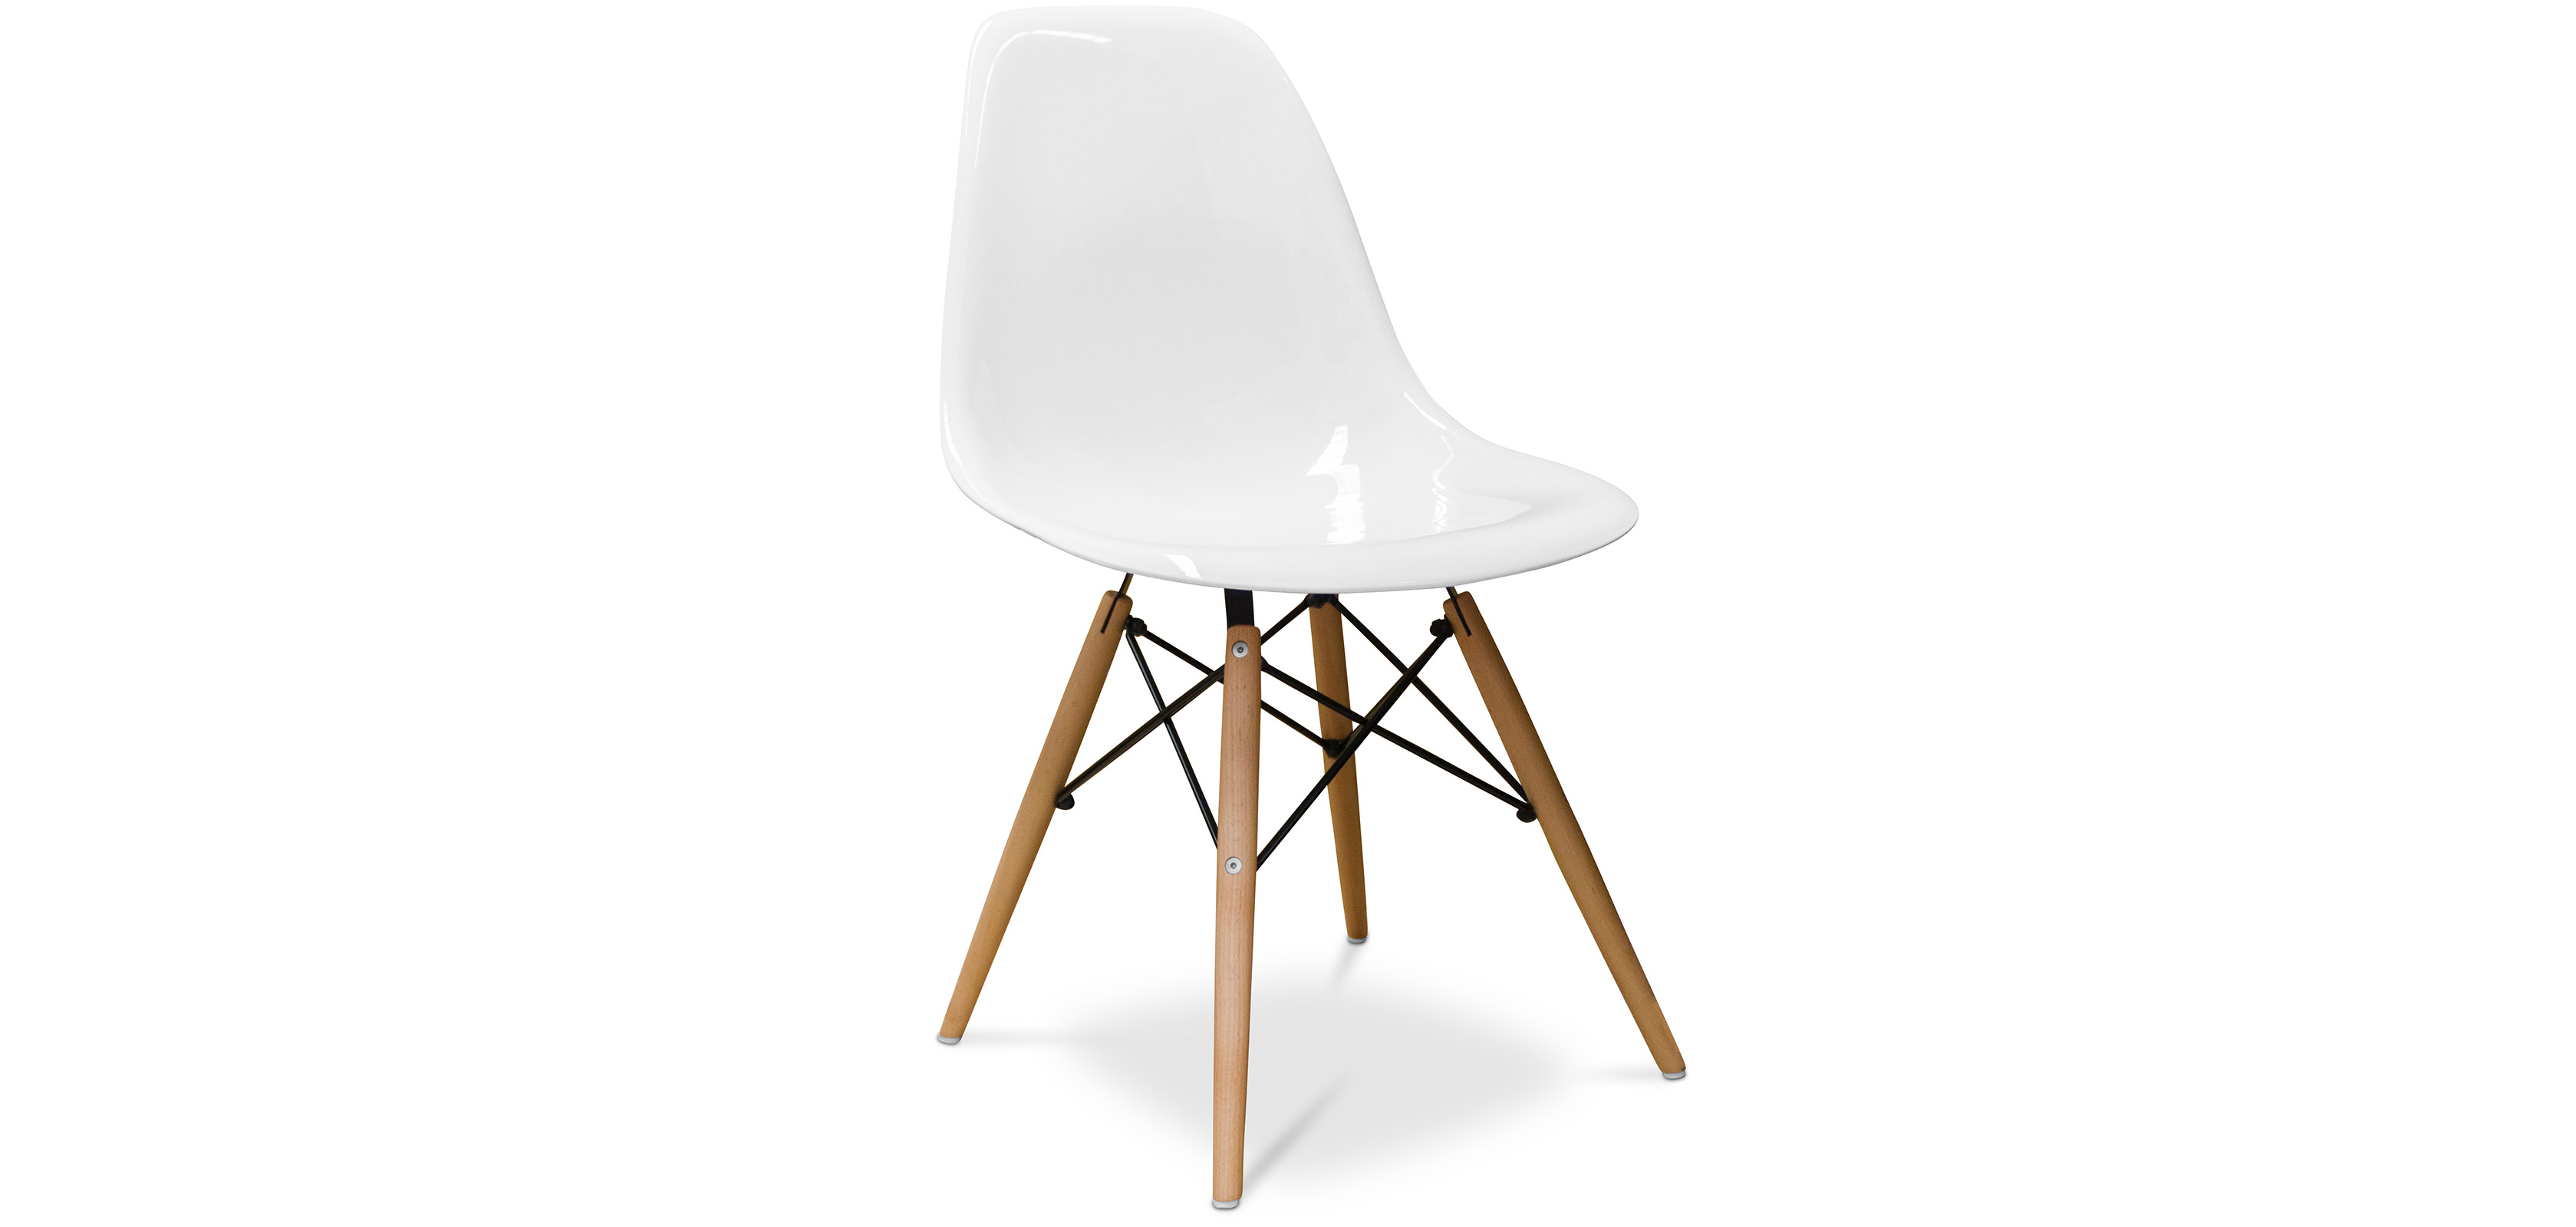 Stuhl dsw best large size of black dsw chair eiffel chair for Vitra tisch replica